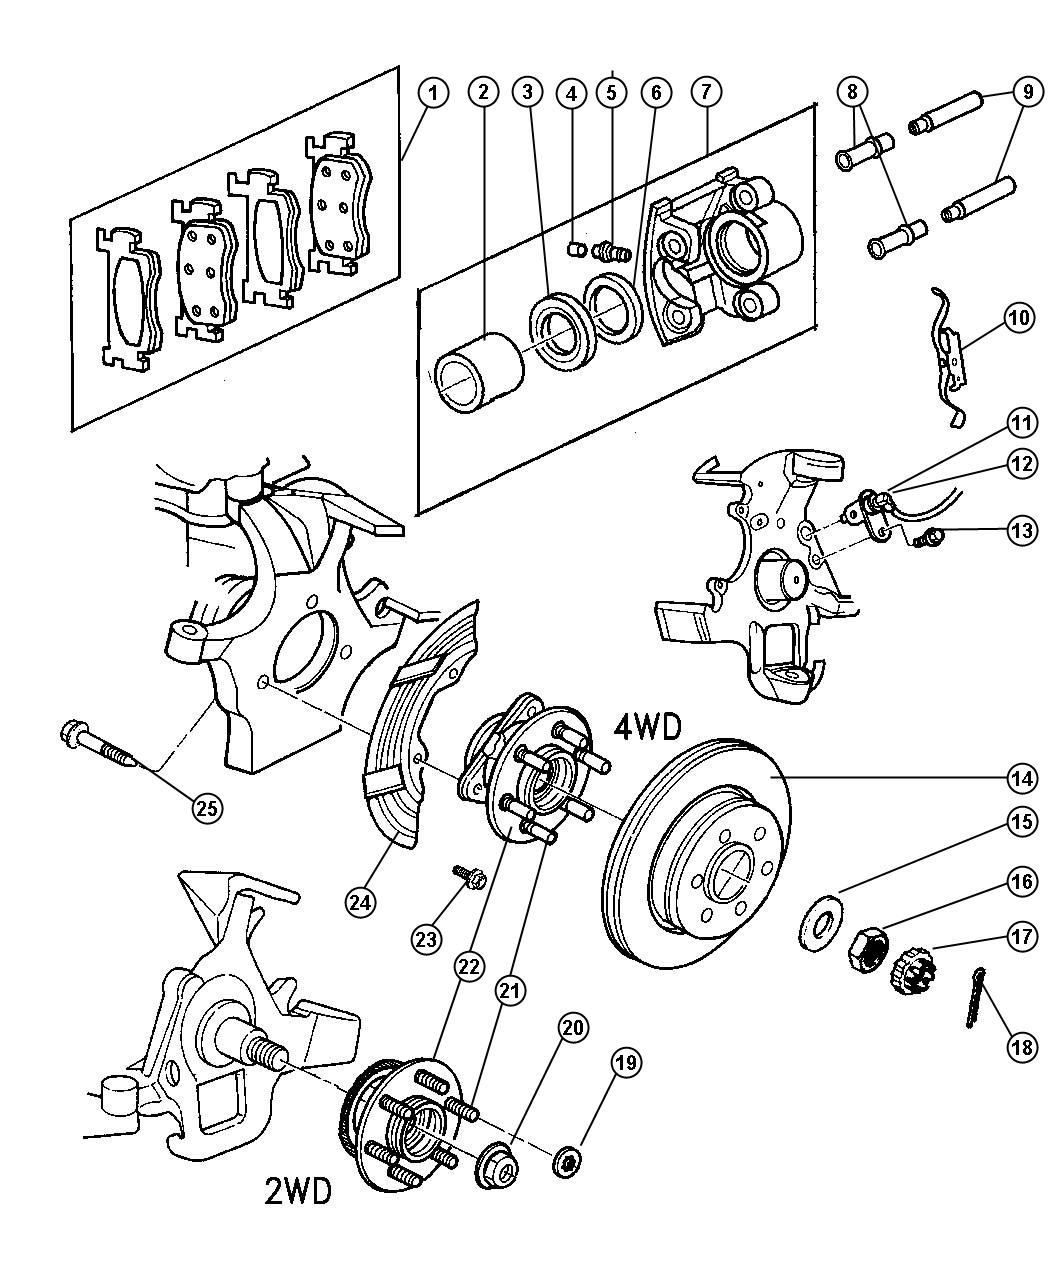 2001 Dodge Ram 1500 4x4 Front Axle Diagram